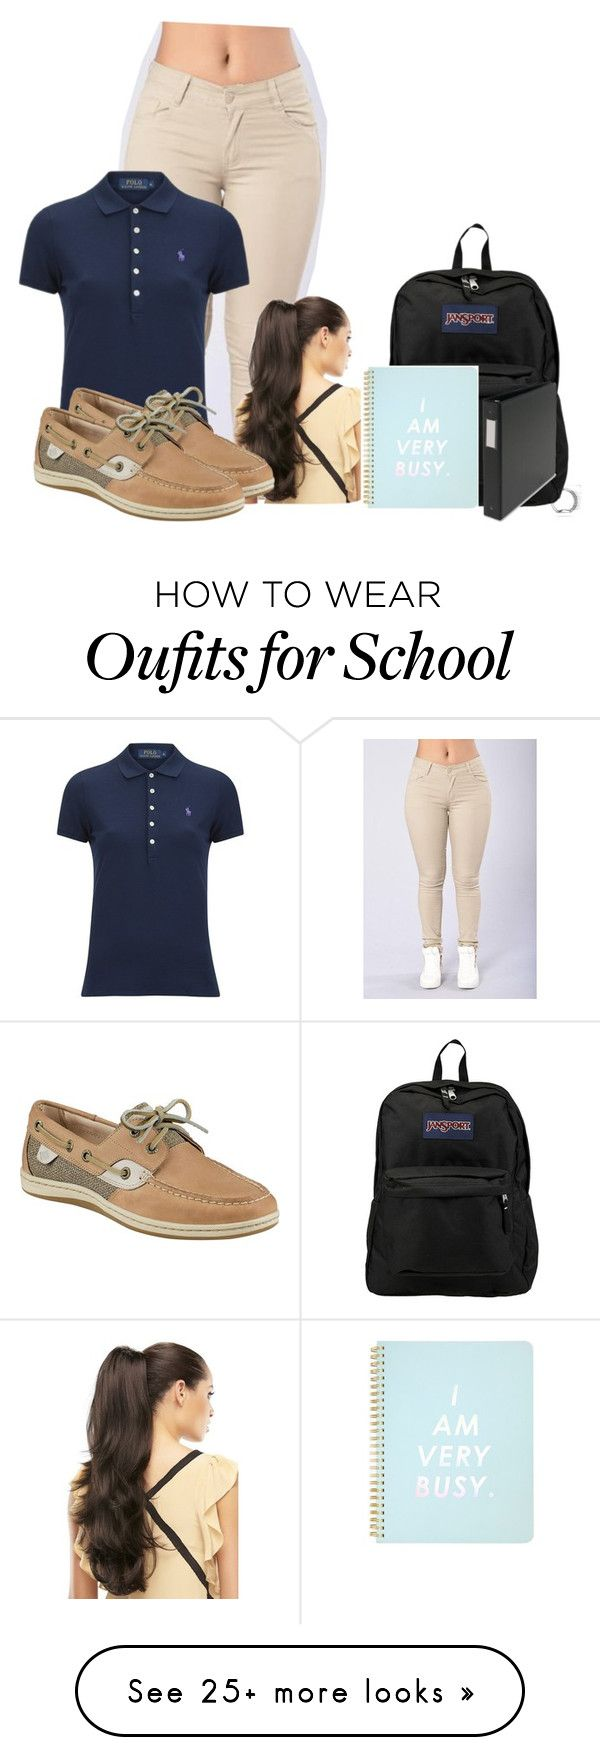 """""""School uniform"""" by asvpkateee on Polyvore featuring Polo Ralph Lauren, JanSport, ban.do and Sperry"""